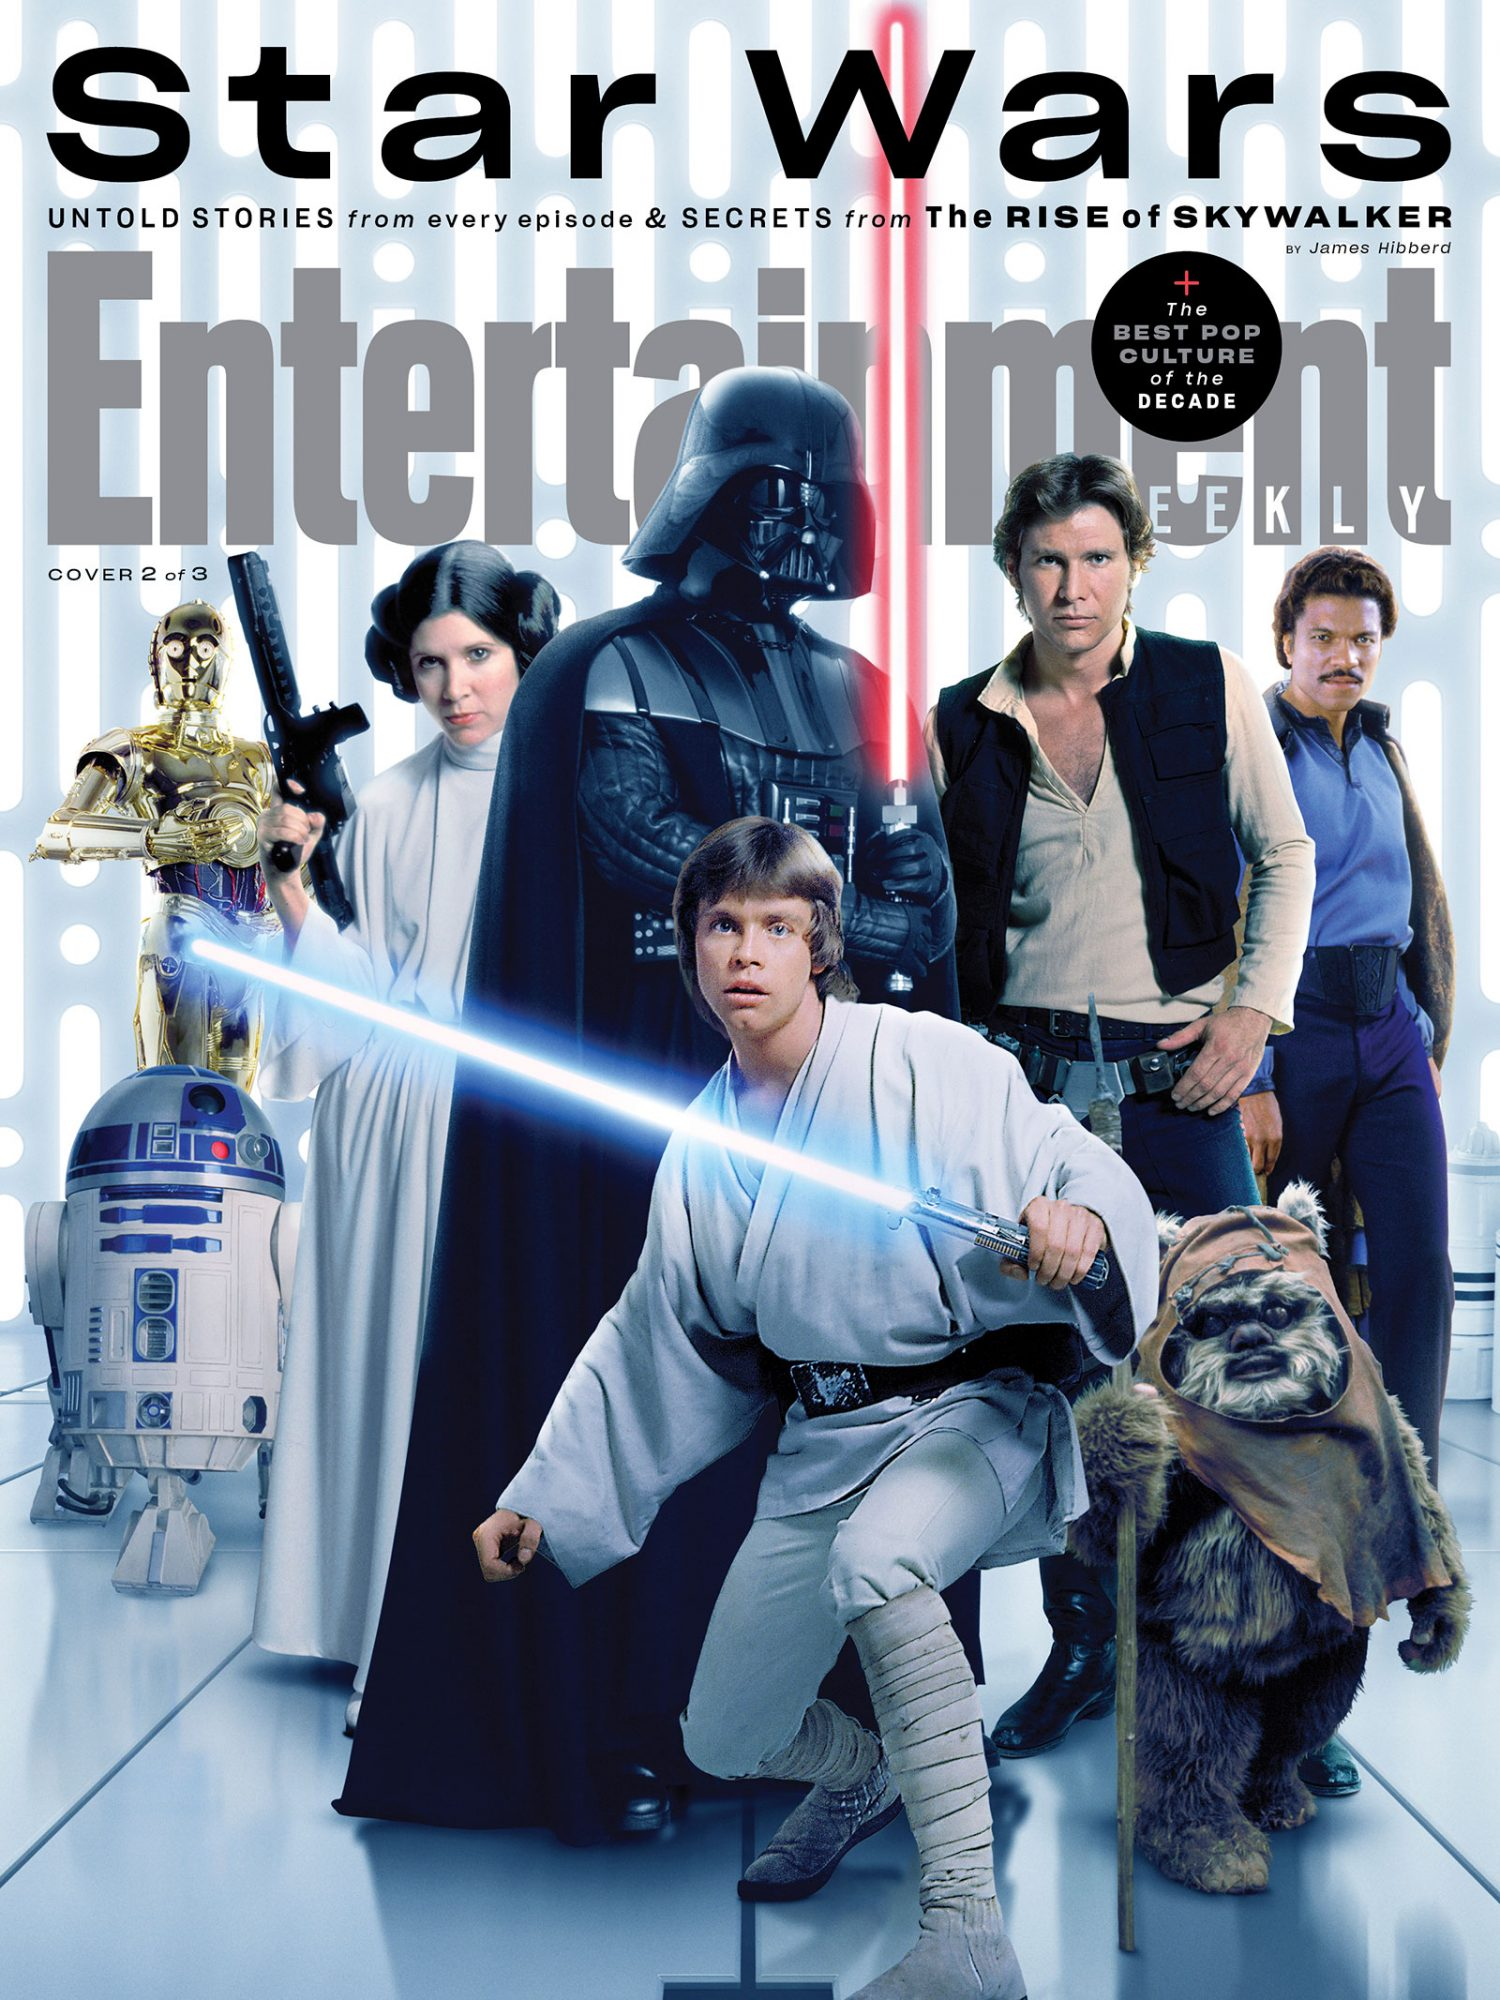 EW's Star Wars Untold Stories issue